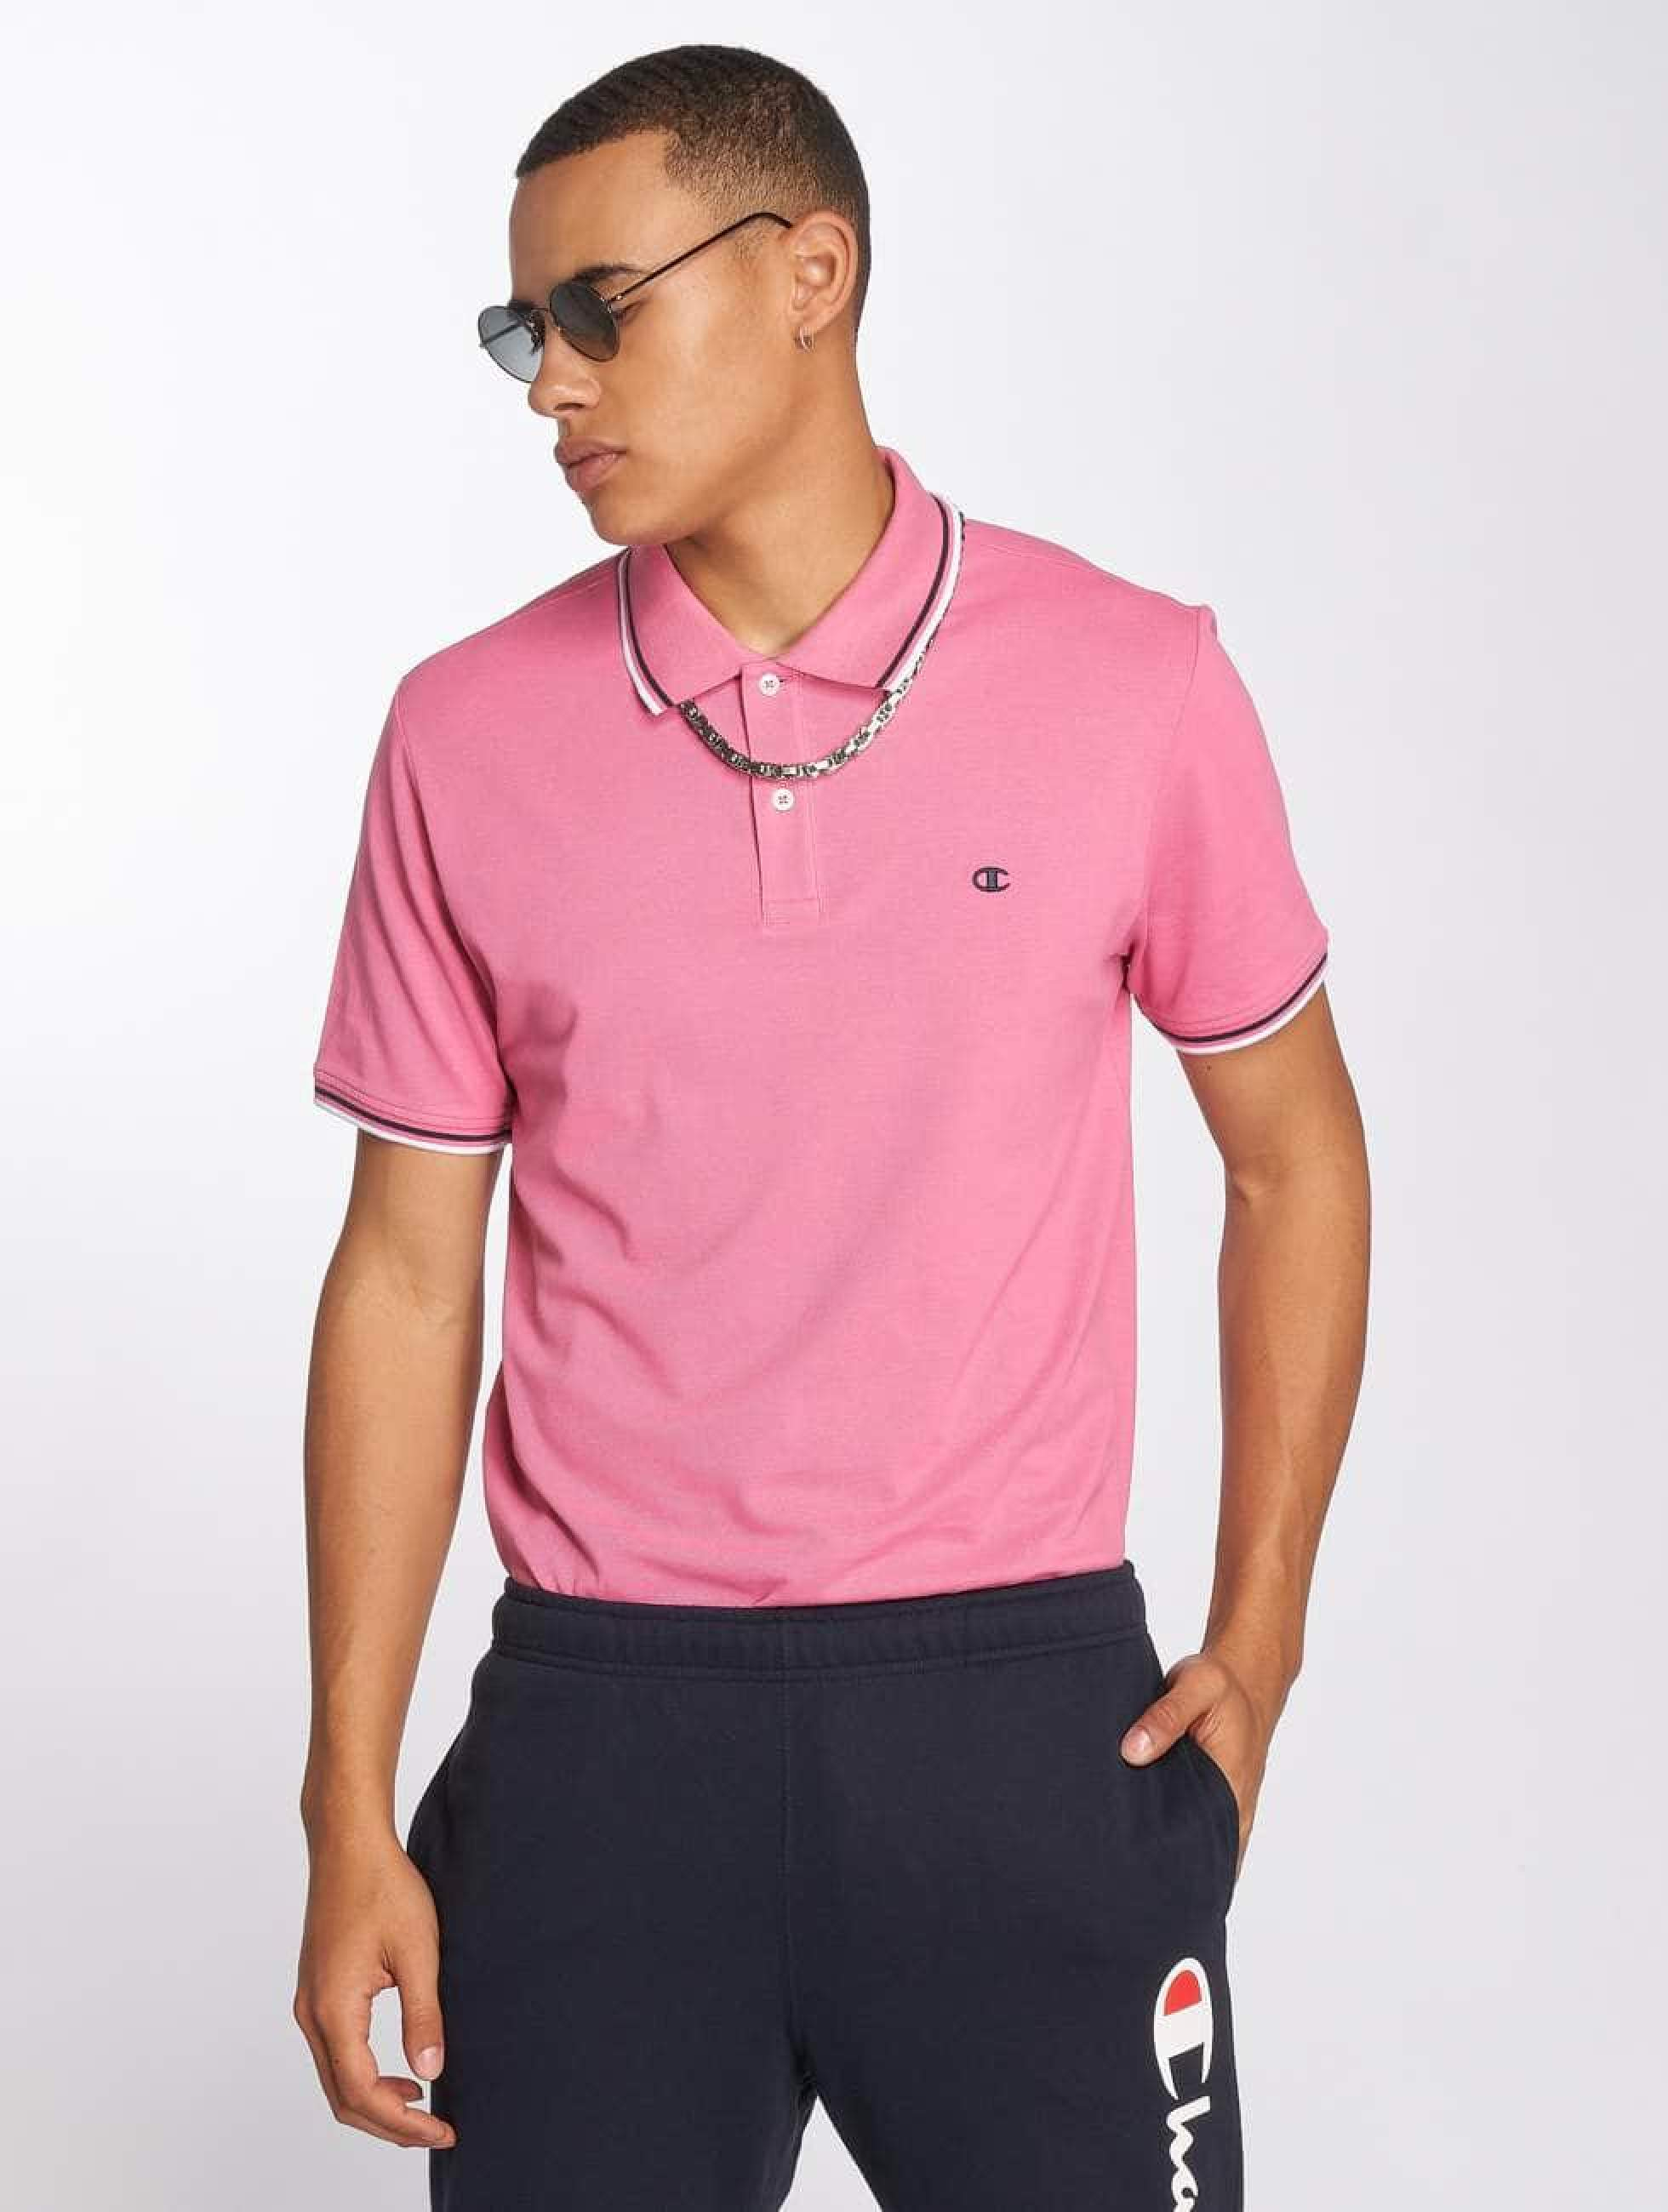 Champion Athletics Männer Poloshirt Authentic Athletic Apparel in rosa